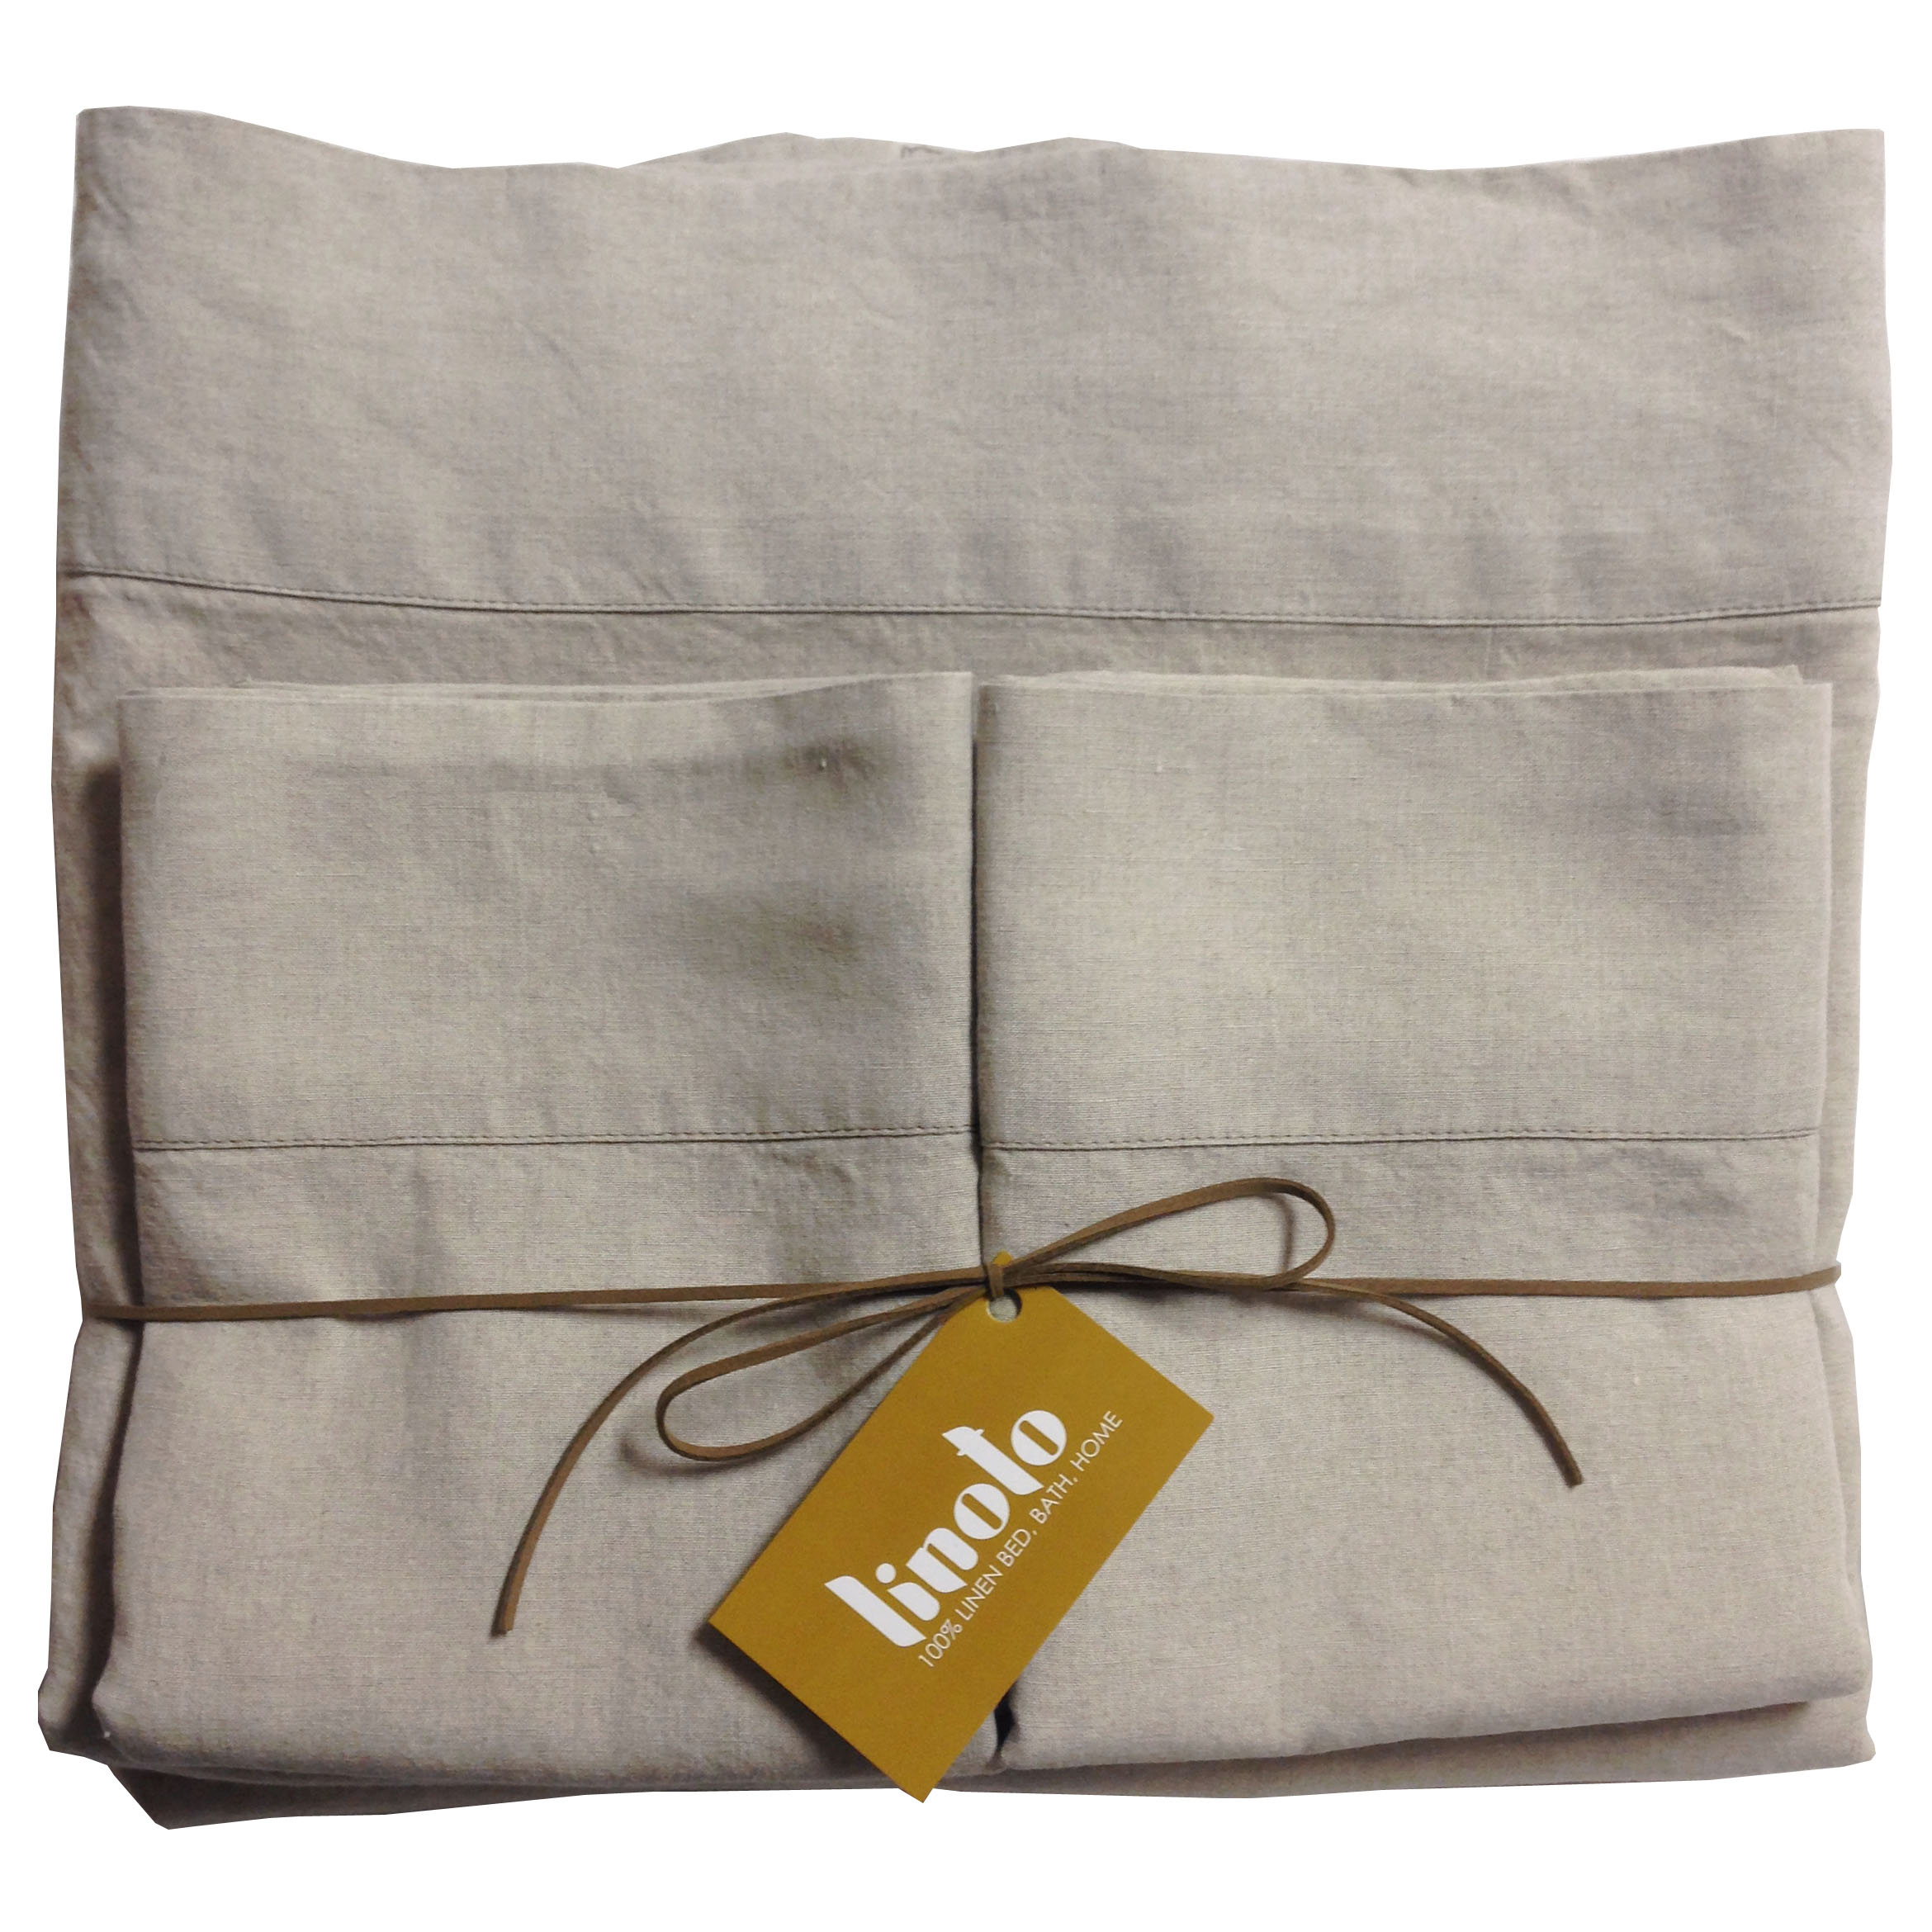 Linoto organic linen sheet set (natural)